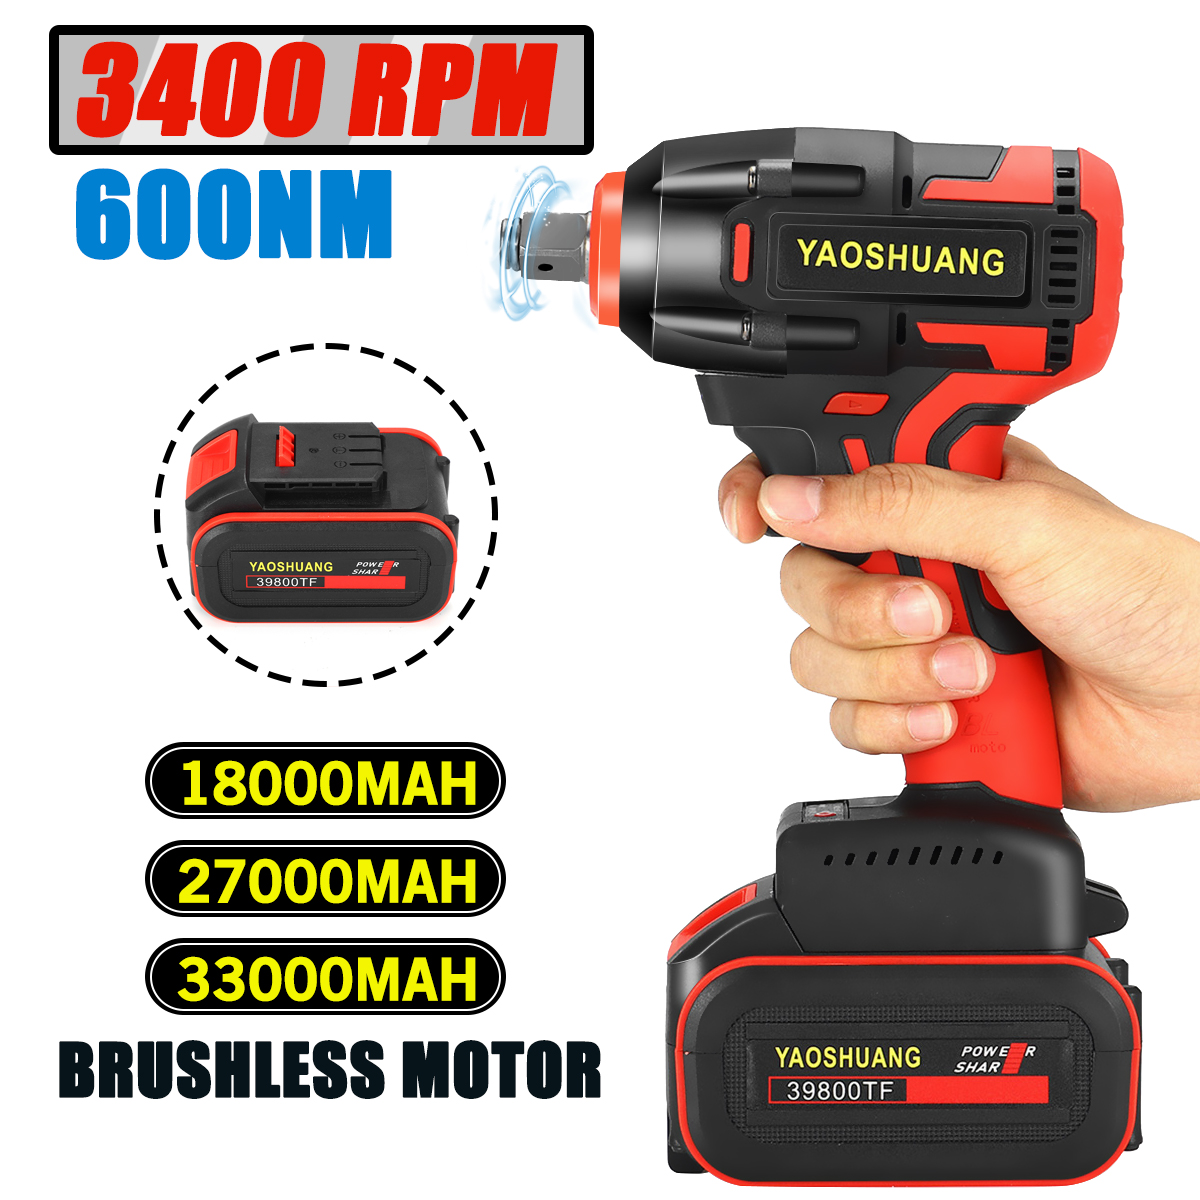 Doersupp Brushless Electric Wrench Impact Cordless Wrench Socket Wrench 220V/110V 33000mAh Screwdriver Hand Drill Motor Install